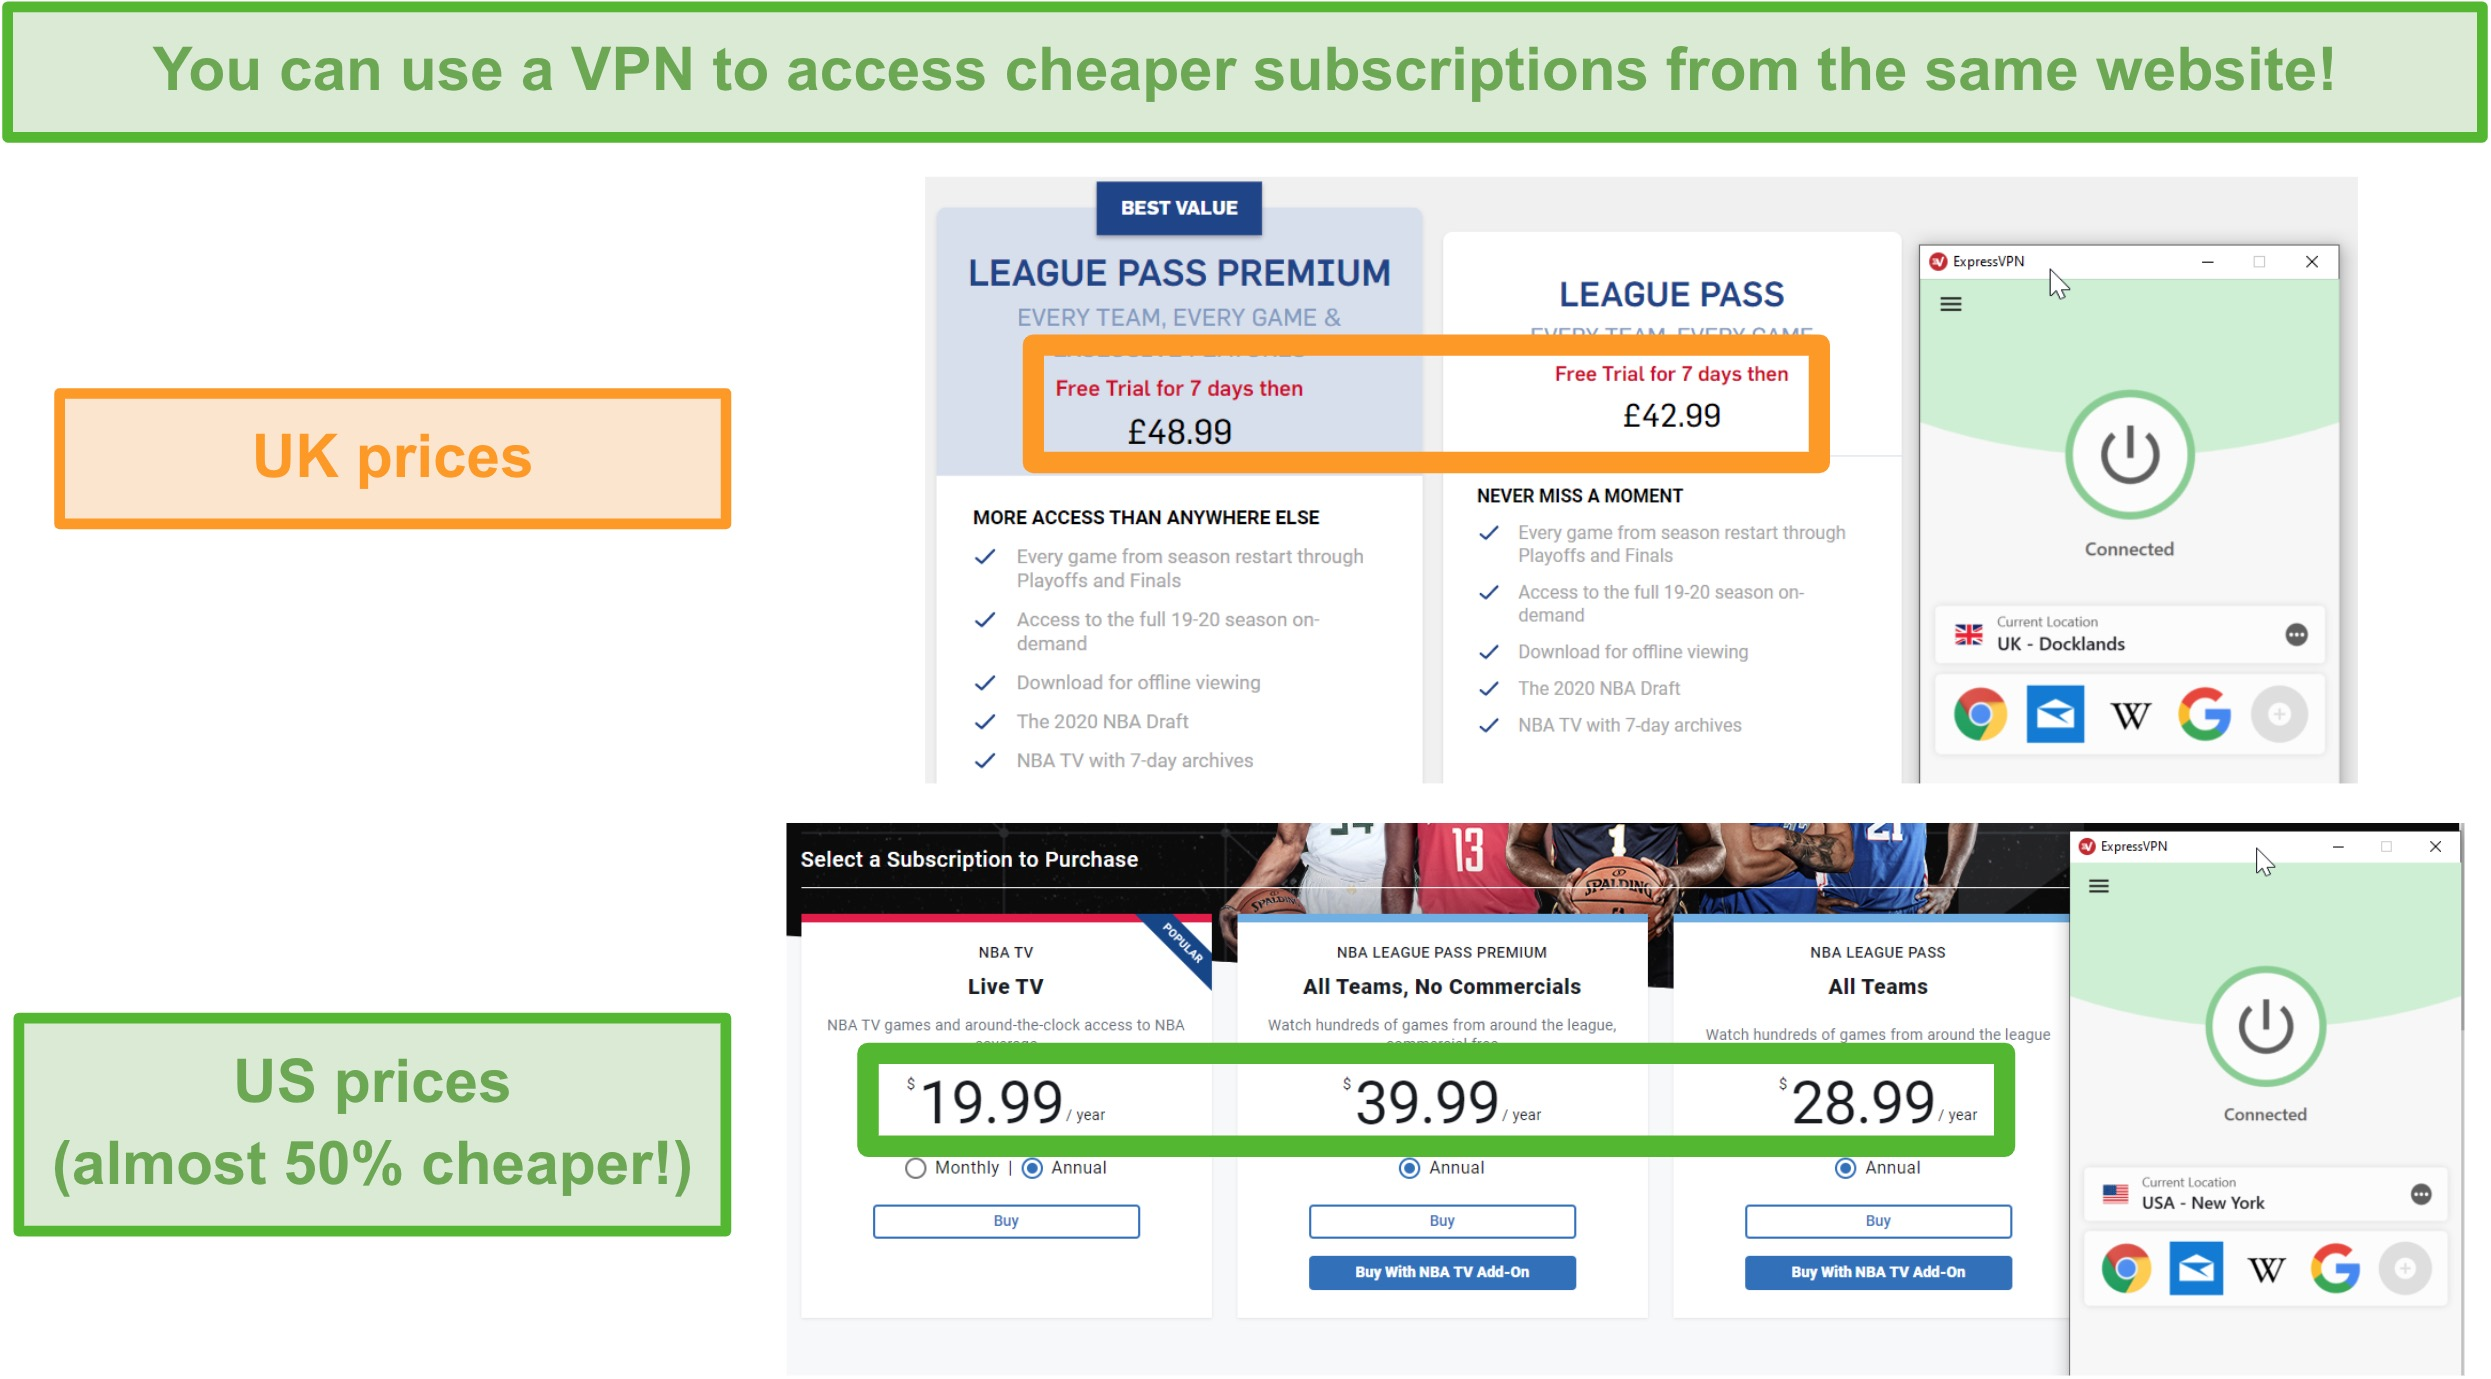 Screenshot of ExpressVPN connected to a US server with a cheaper price on the NBA League Pass compared to a more expensive UK plan.